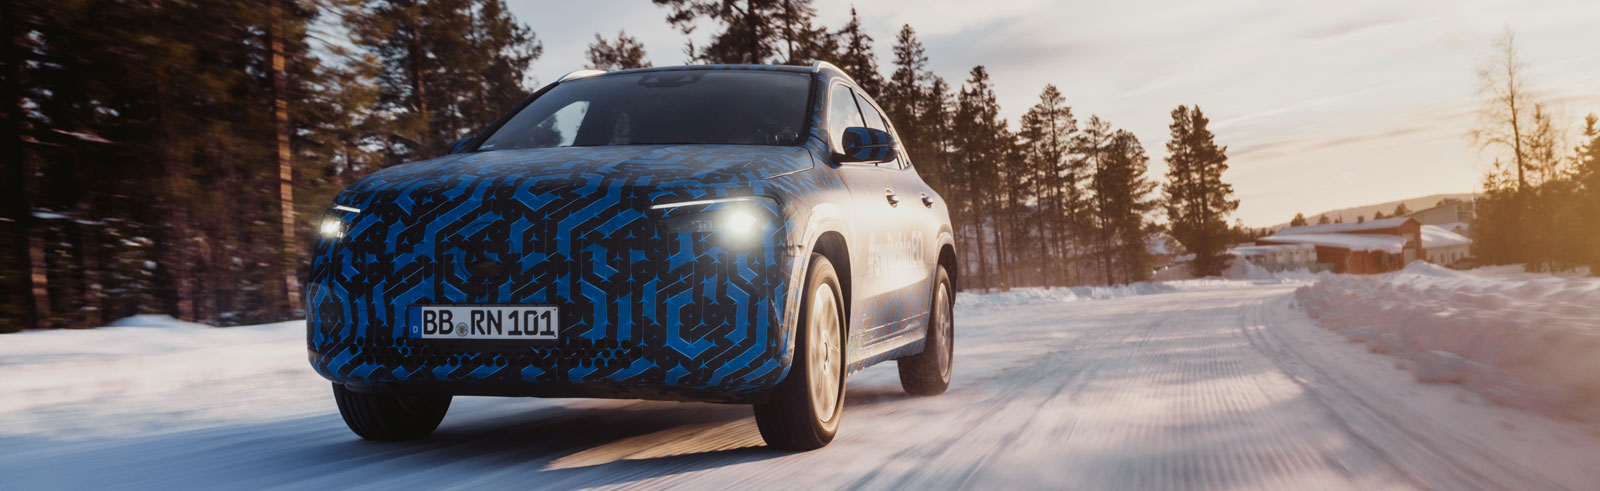 Mercedes EQA winter testing photos, new compact PHEVs will debut in Geneva next month